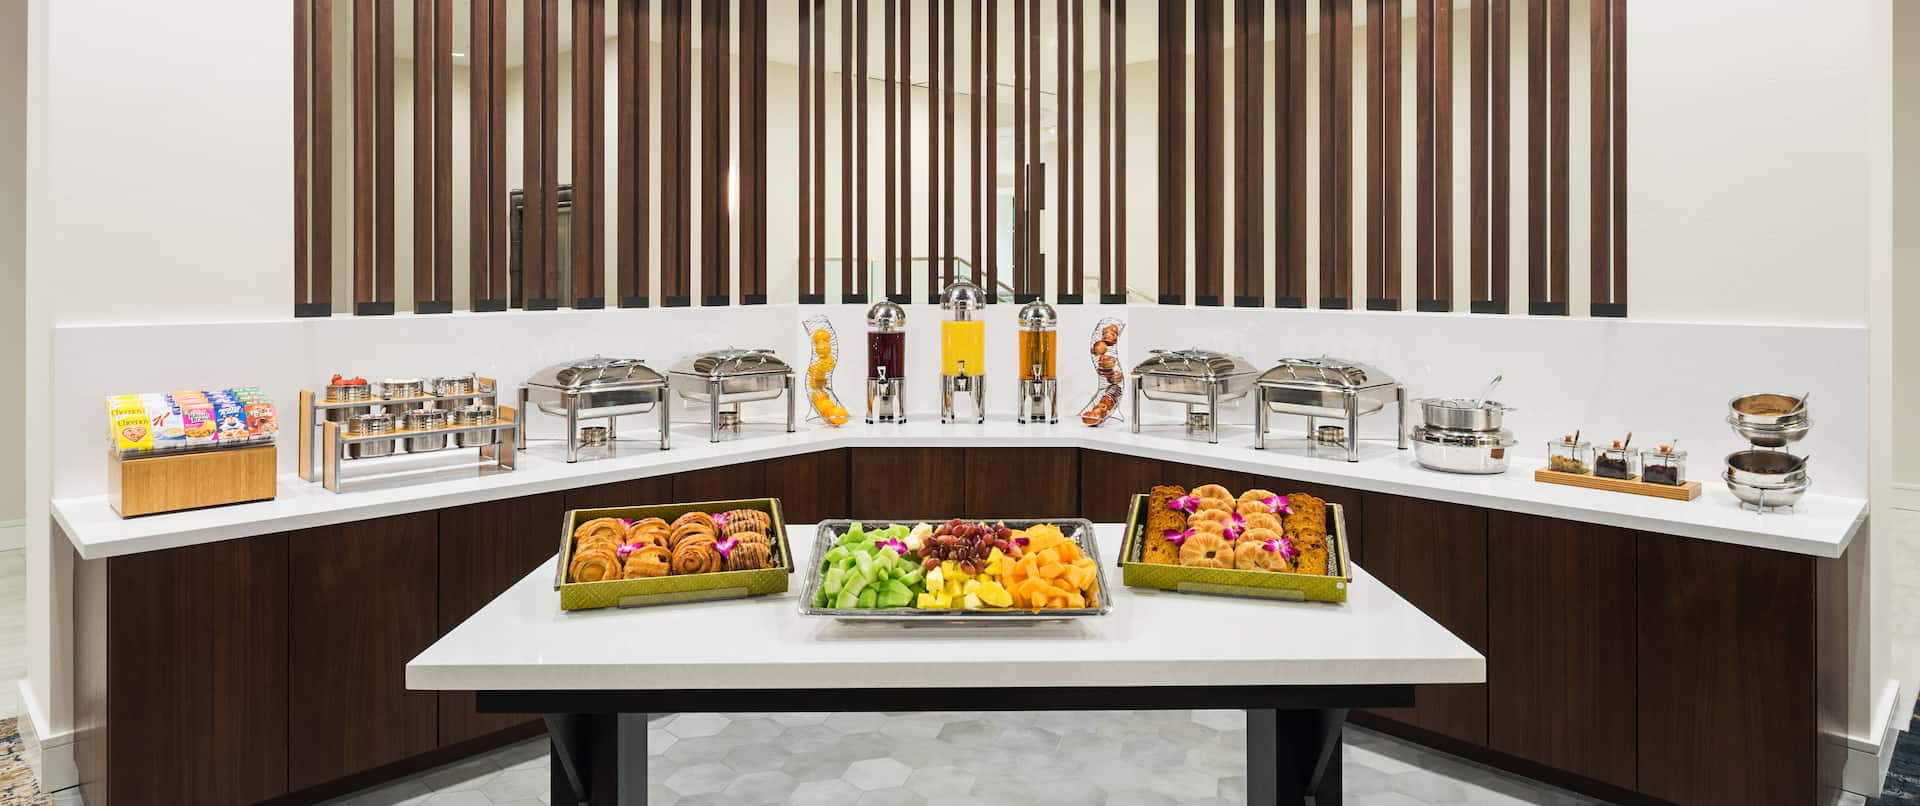 Breakfast Buffet Area with Various Types of Breakfast Beverages